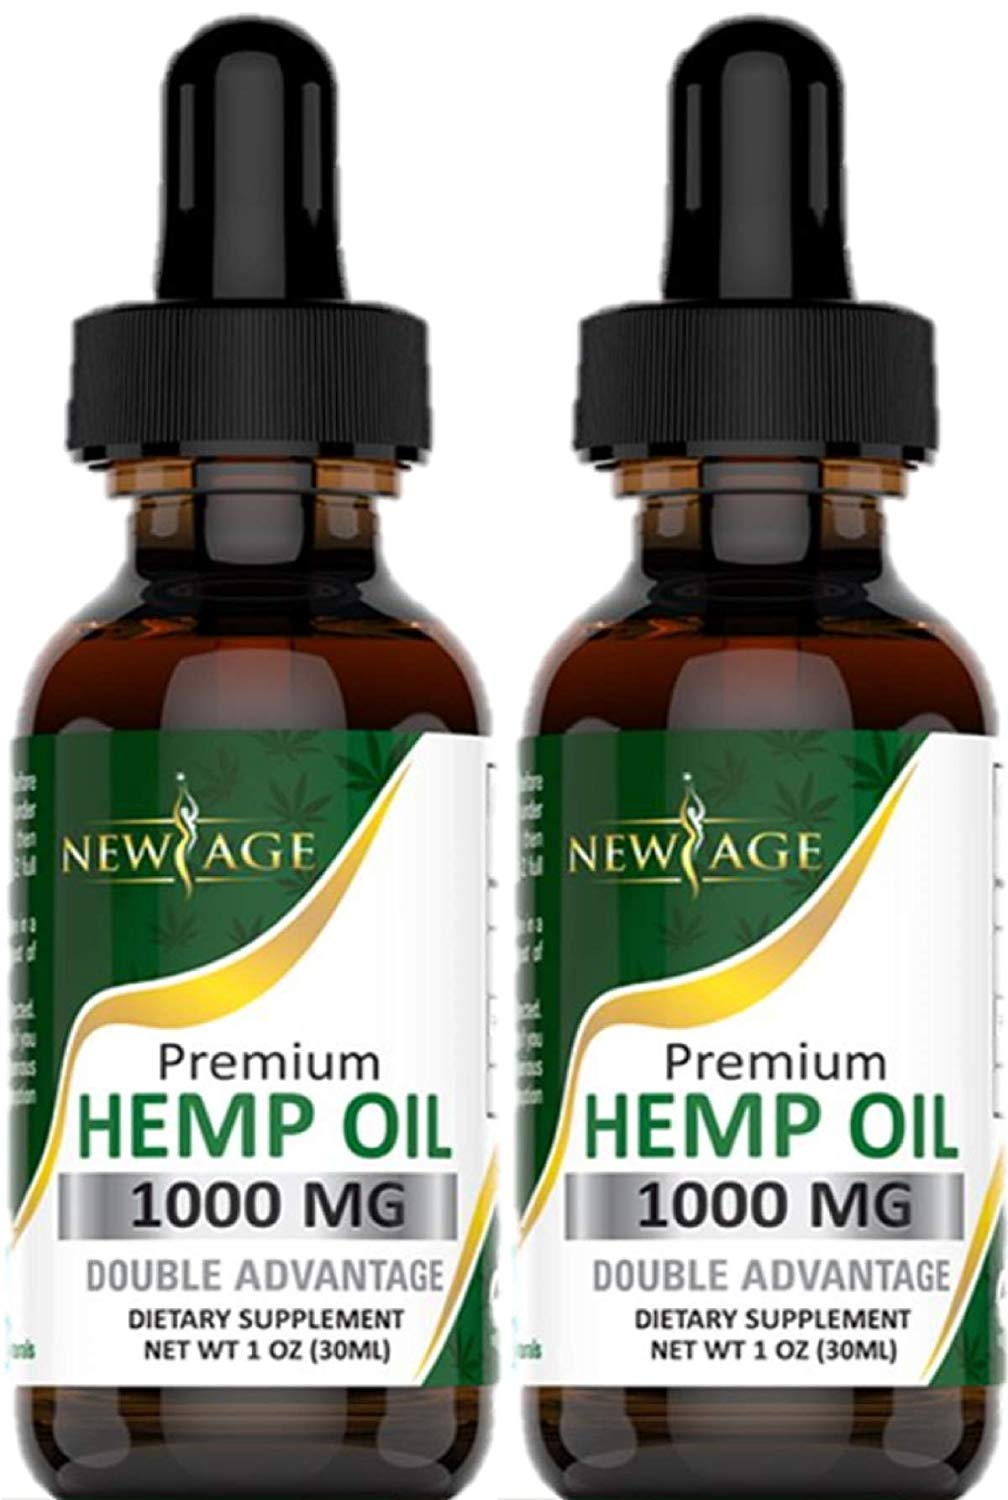 Review of Hemp Oil Extract for Pain & Stress Relief - 1000mg of Organic Hemp Extract - Grown & Made in USA (2-Pack)